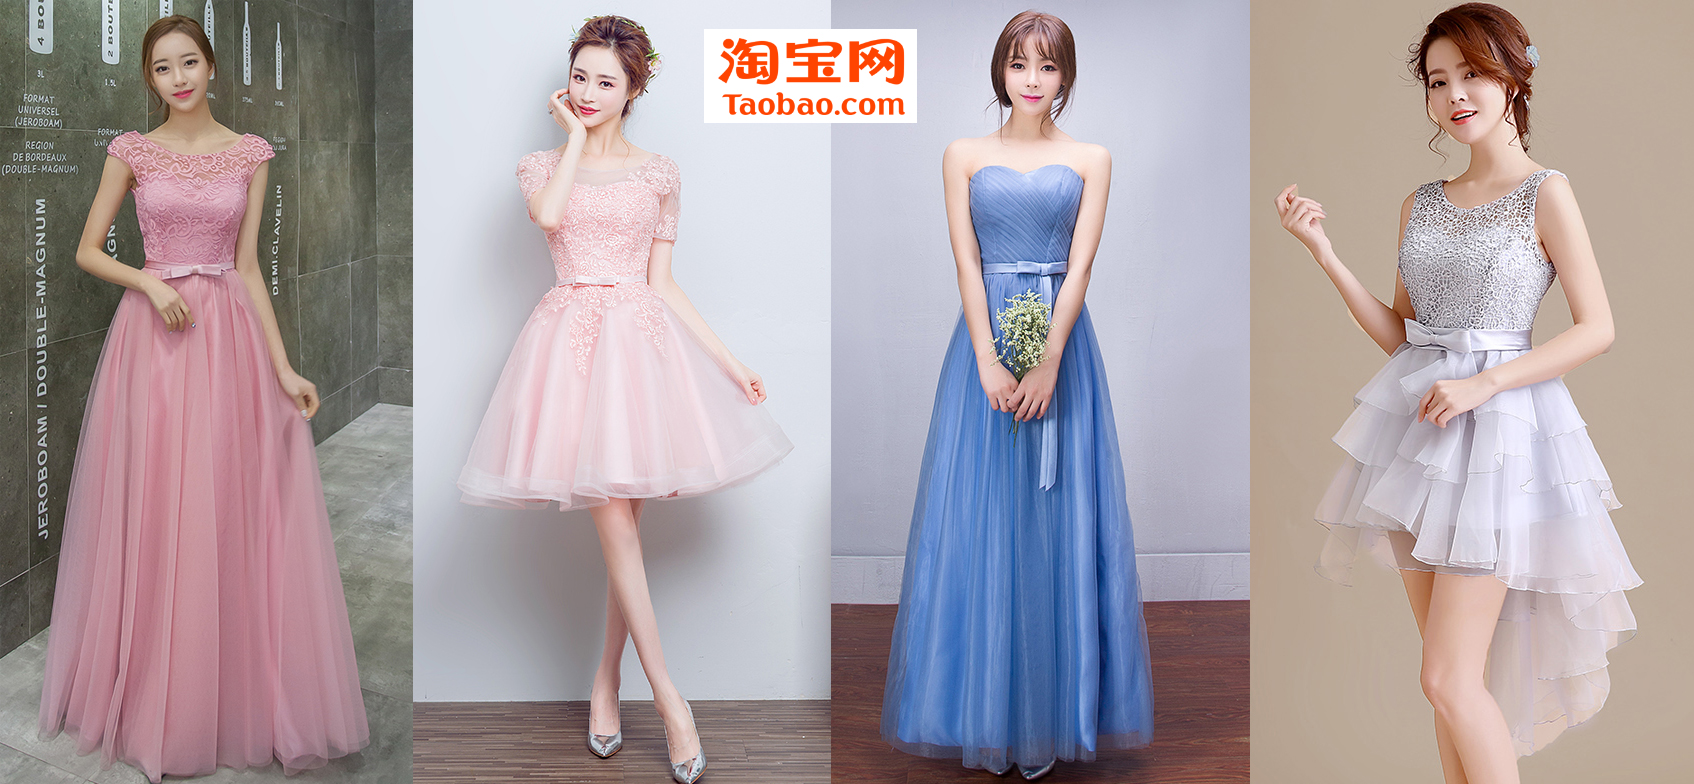 taobao-bridesmaid-dress-singapore